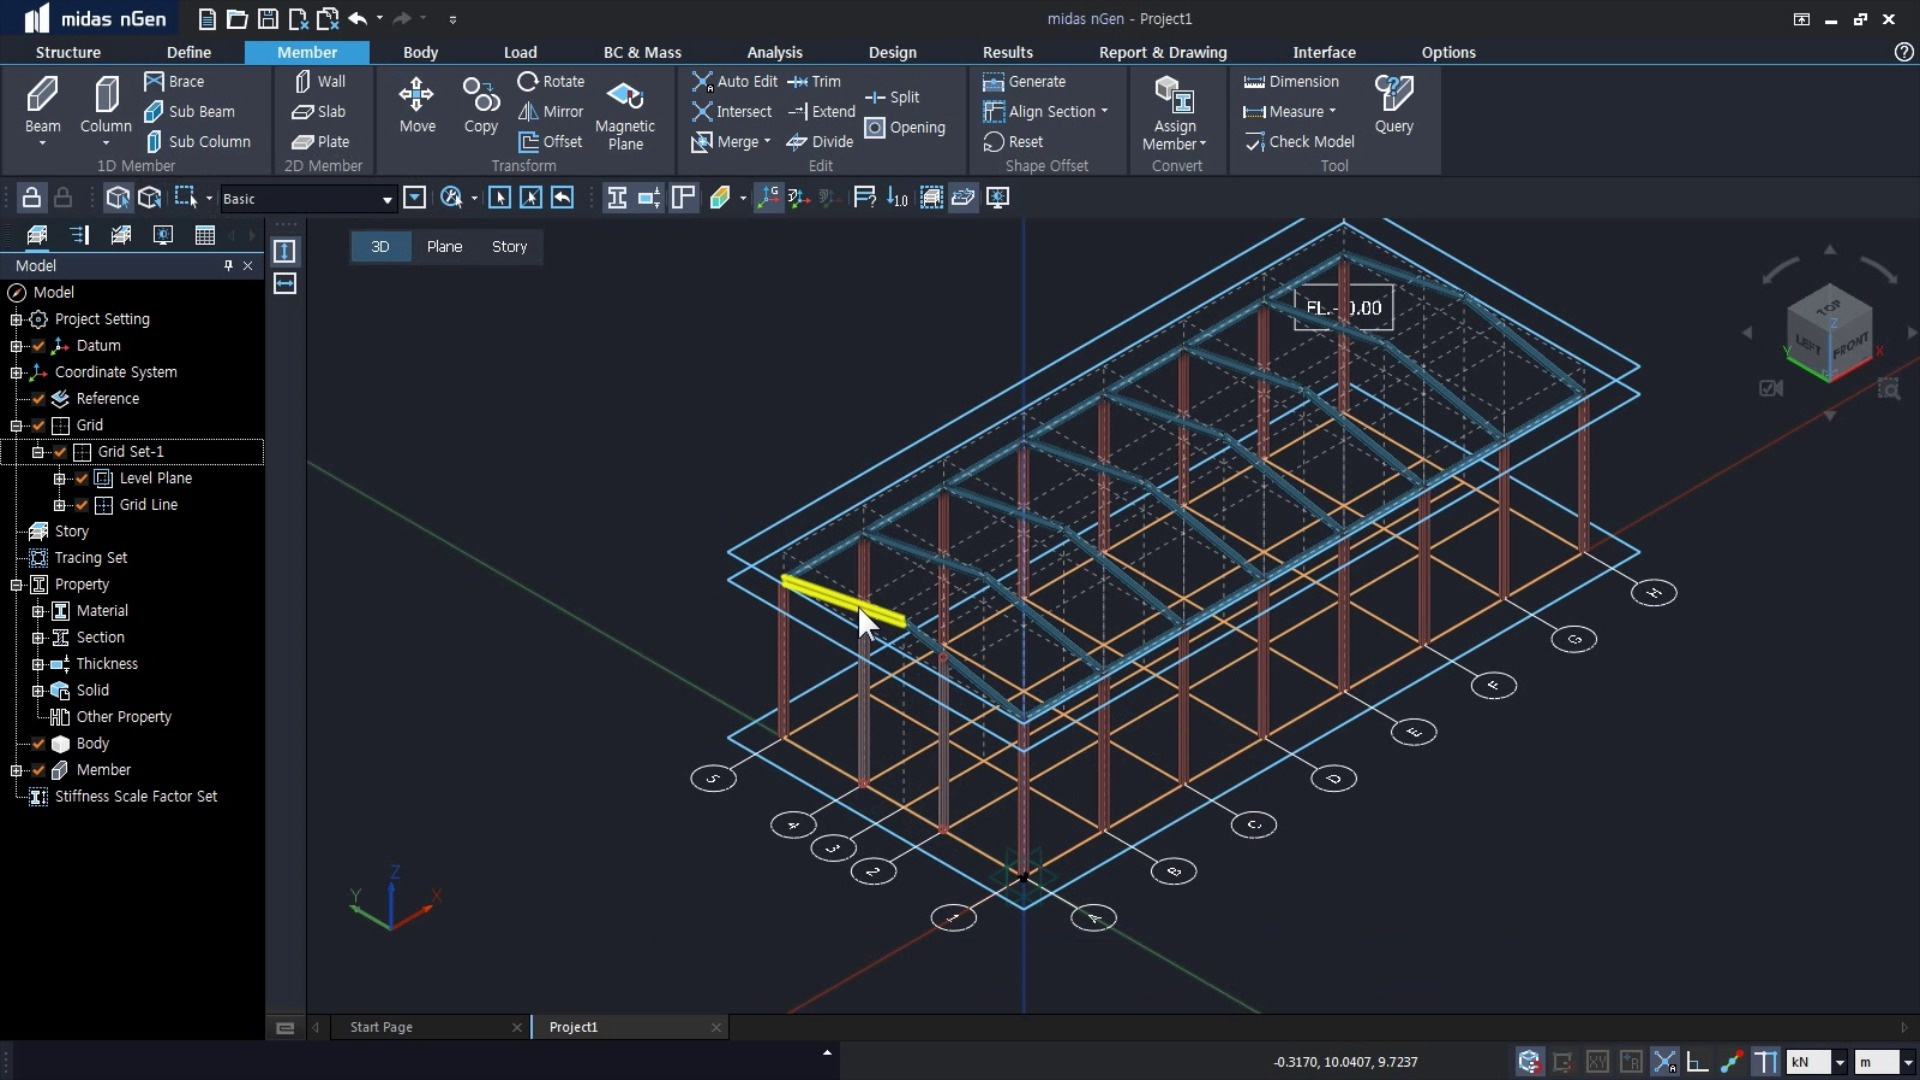 Midas Engineering Software Structural Design Analysis Solution